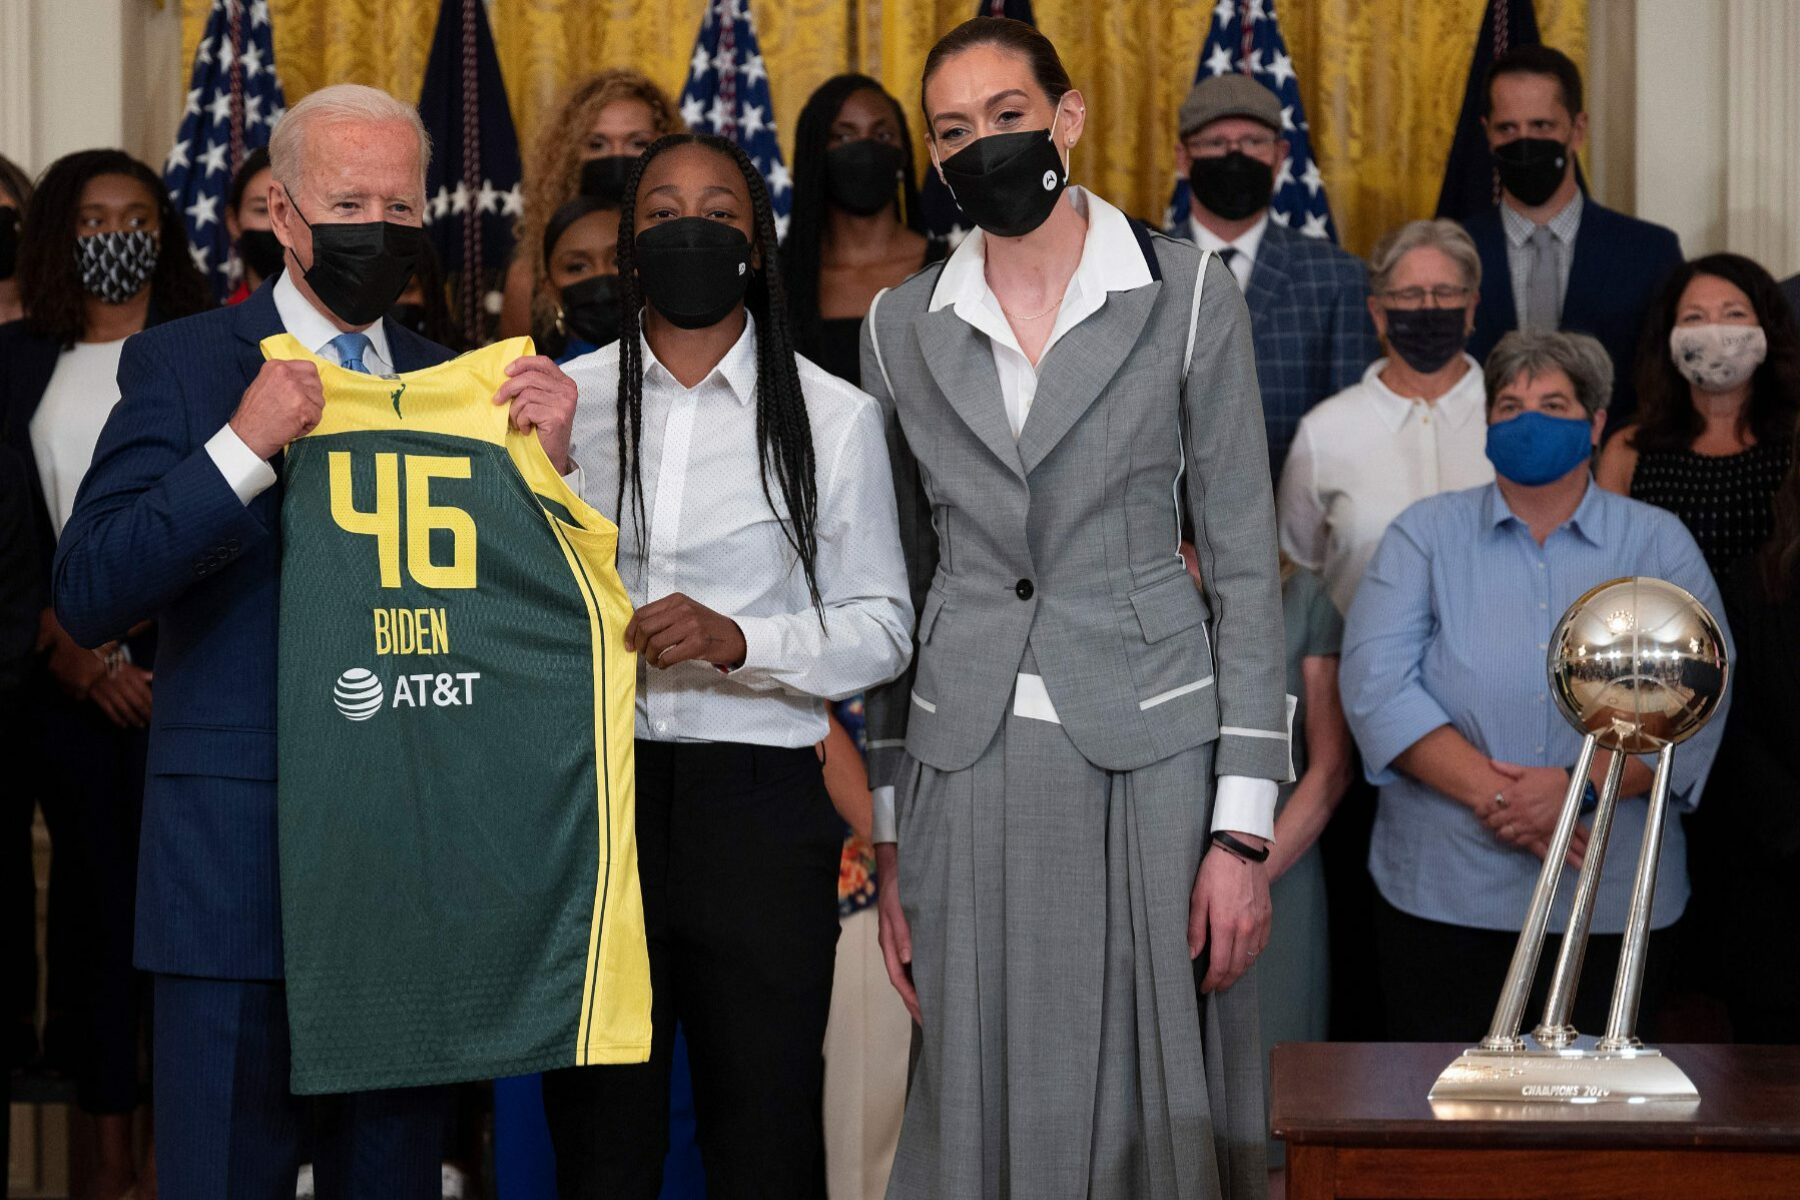 President Biden holding a basketball jersey standing by members of the Seattle Storm.